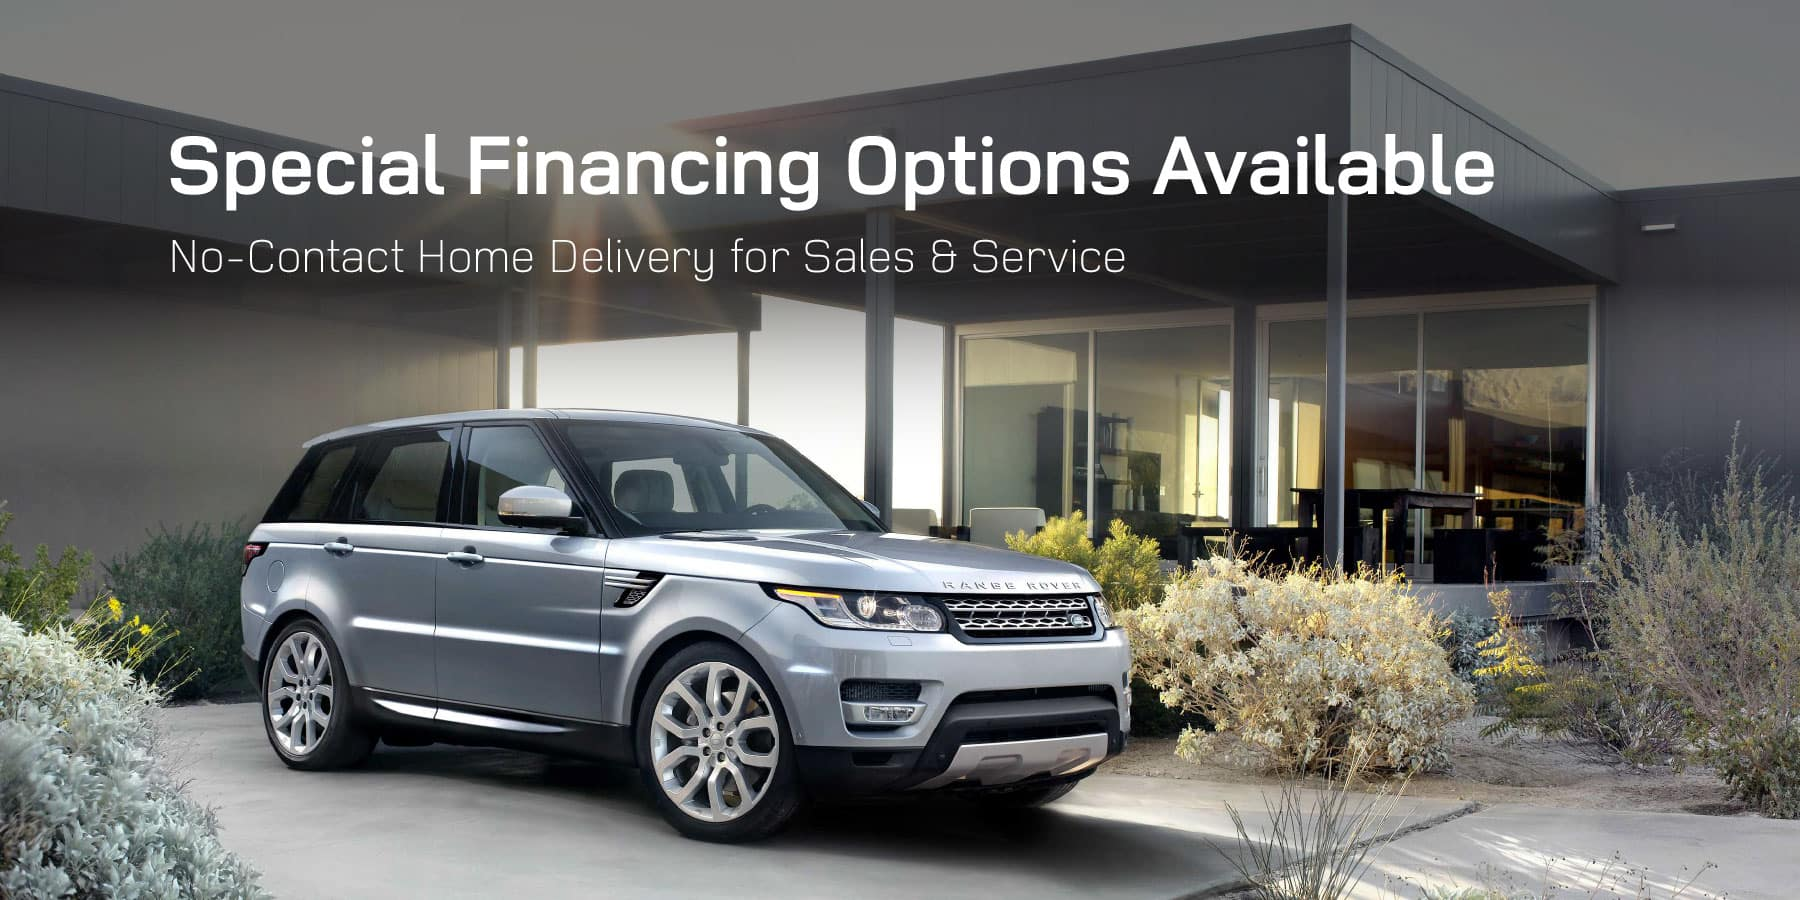 Autobahn Land Rover Fort Worth | New Car Showroom now CLOSED, SALES Online